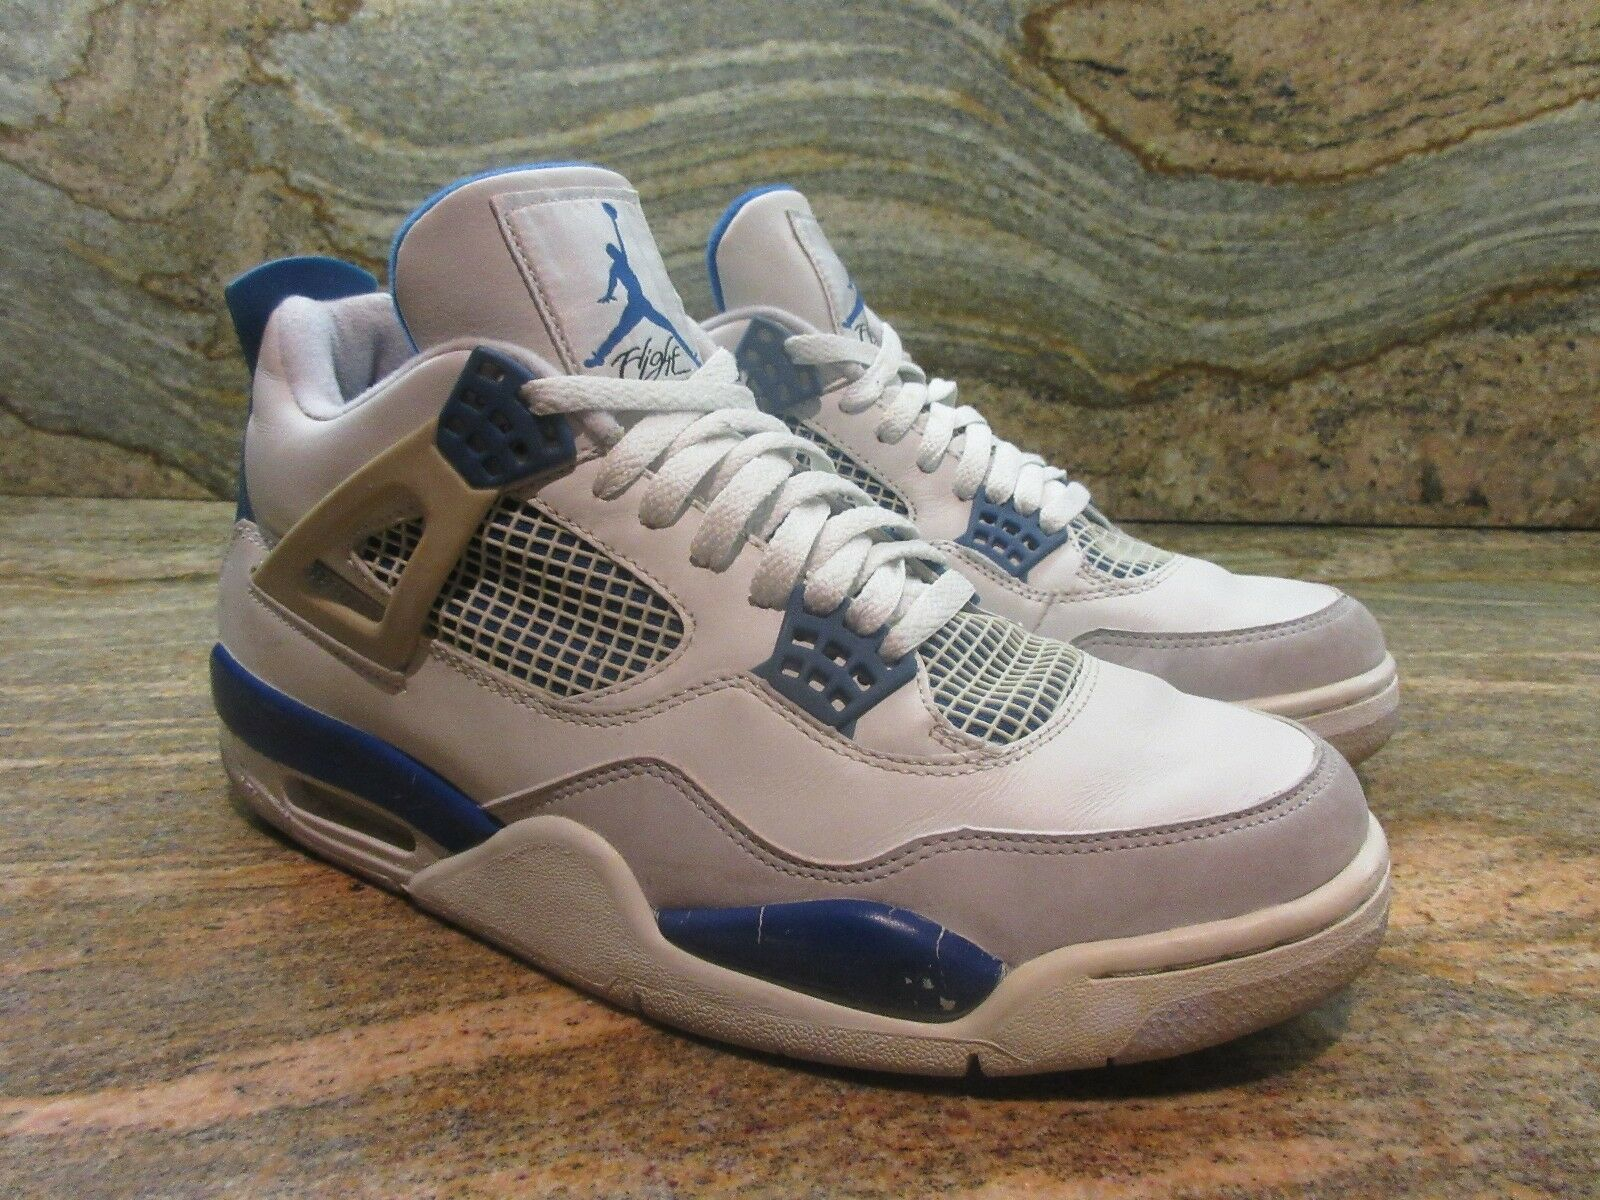 2006 Nike Air Jordan 4 IV Retro OG SZ 9.5 White Military Blue Cement 308497-141